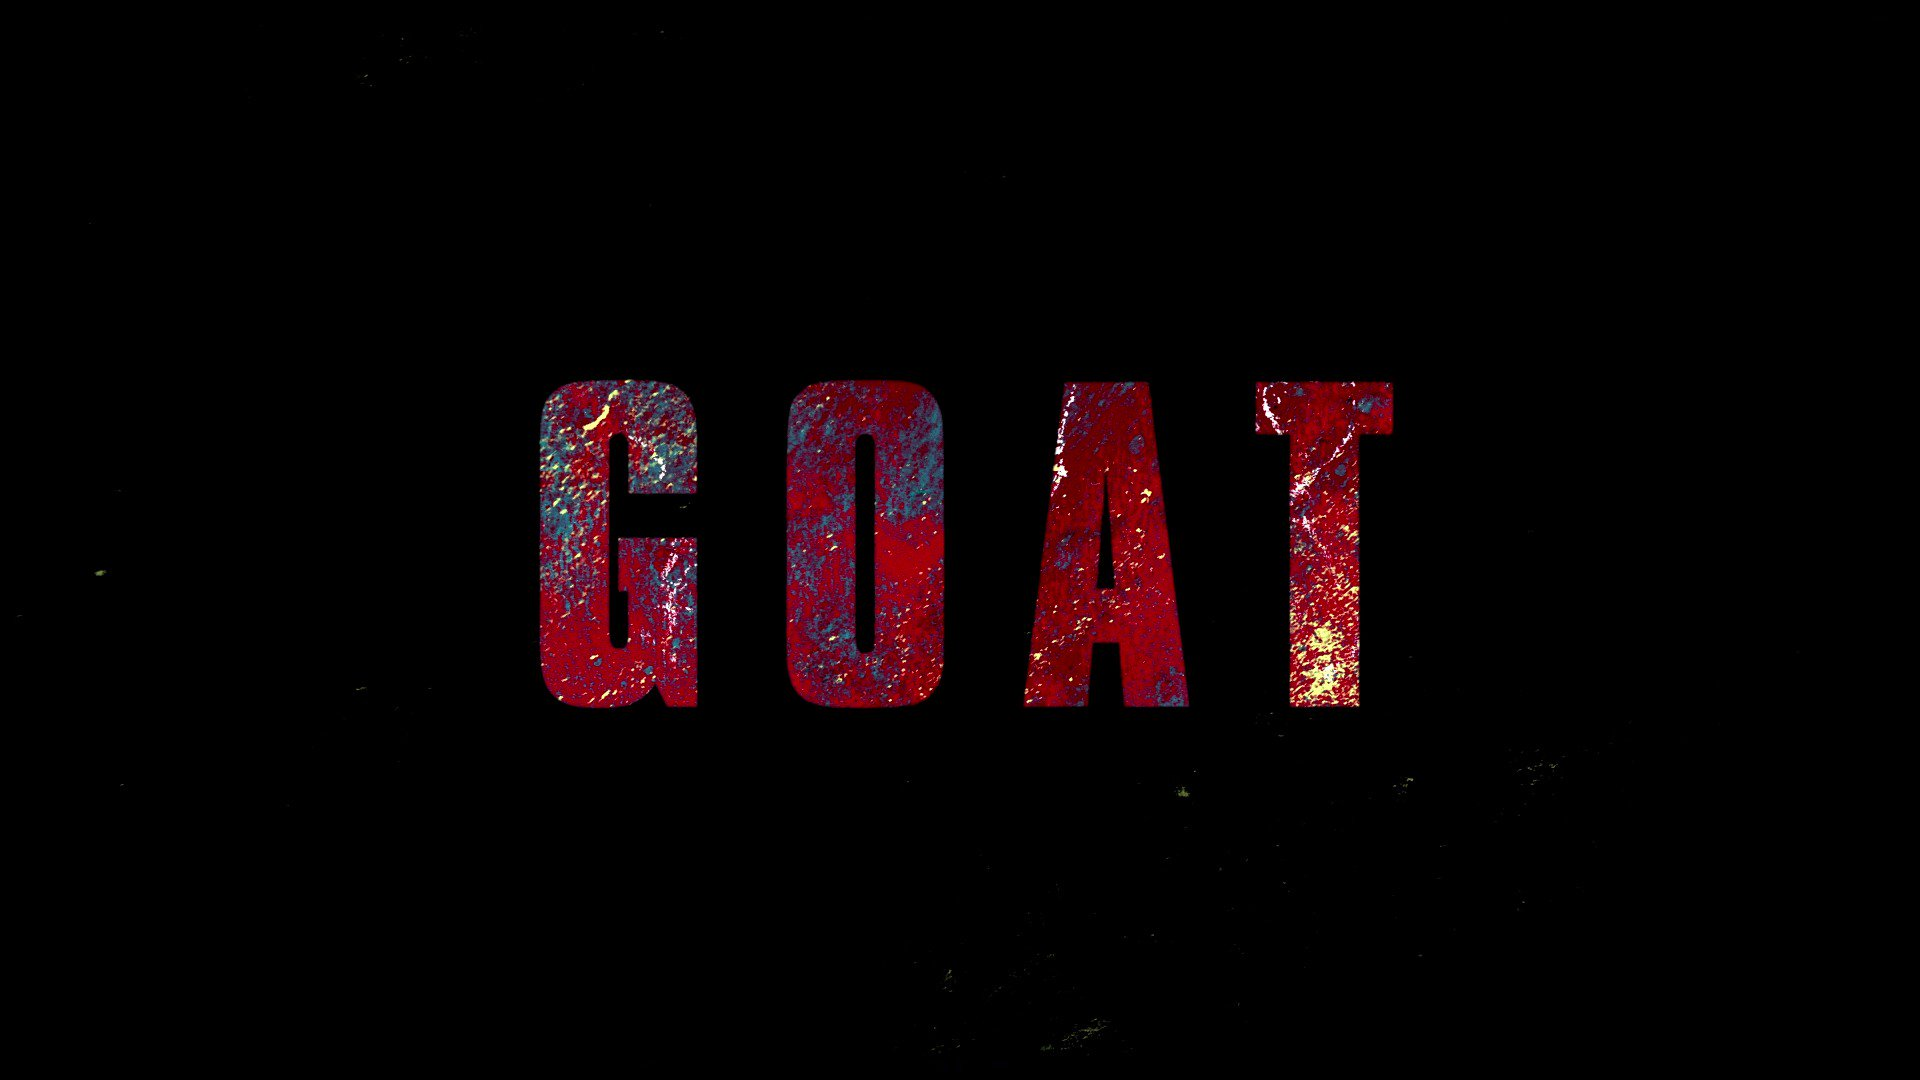 Watch the new restricted trailer for @GoatMovie....Can you handle it? #GoatMovie https://t.co/IxjZWLajUg